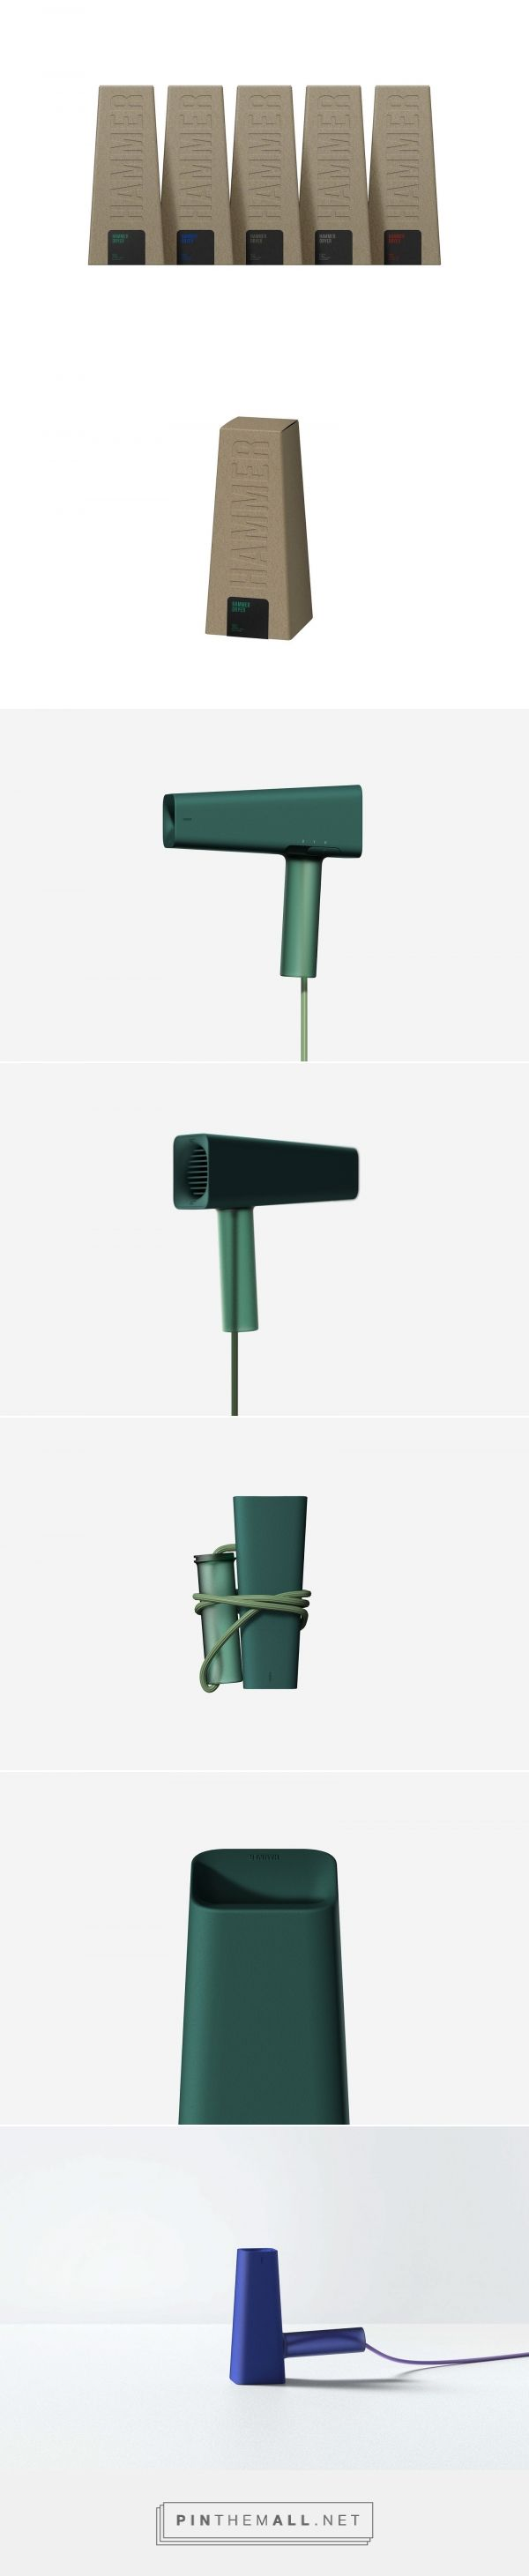 Hammer Dryer packaging design by Jang Junyoung - http://www.packagingoftheworld.com/2017/09/hammer-dryer.html